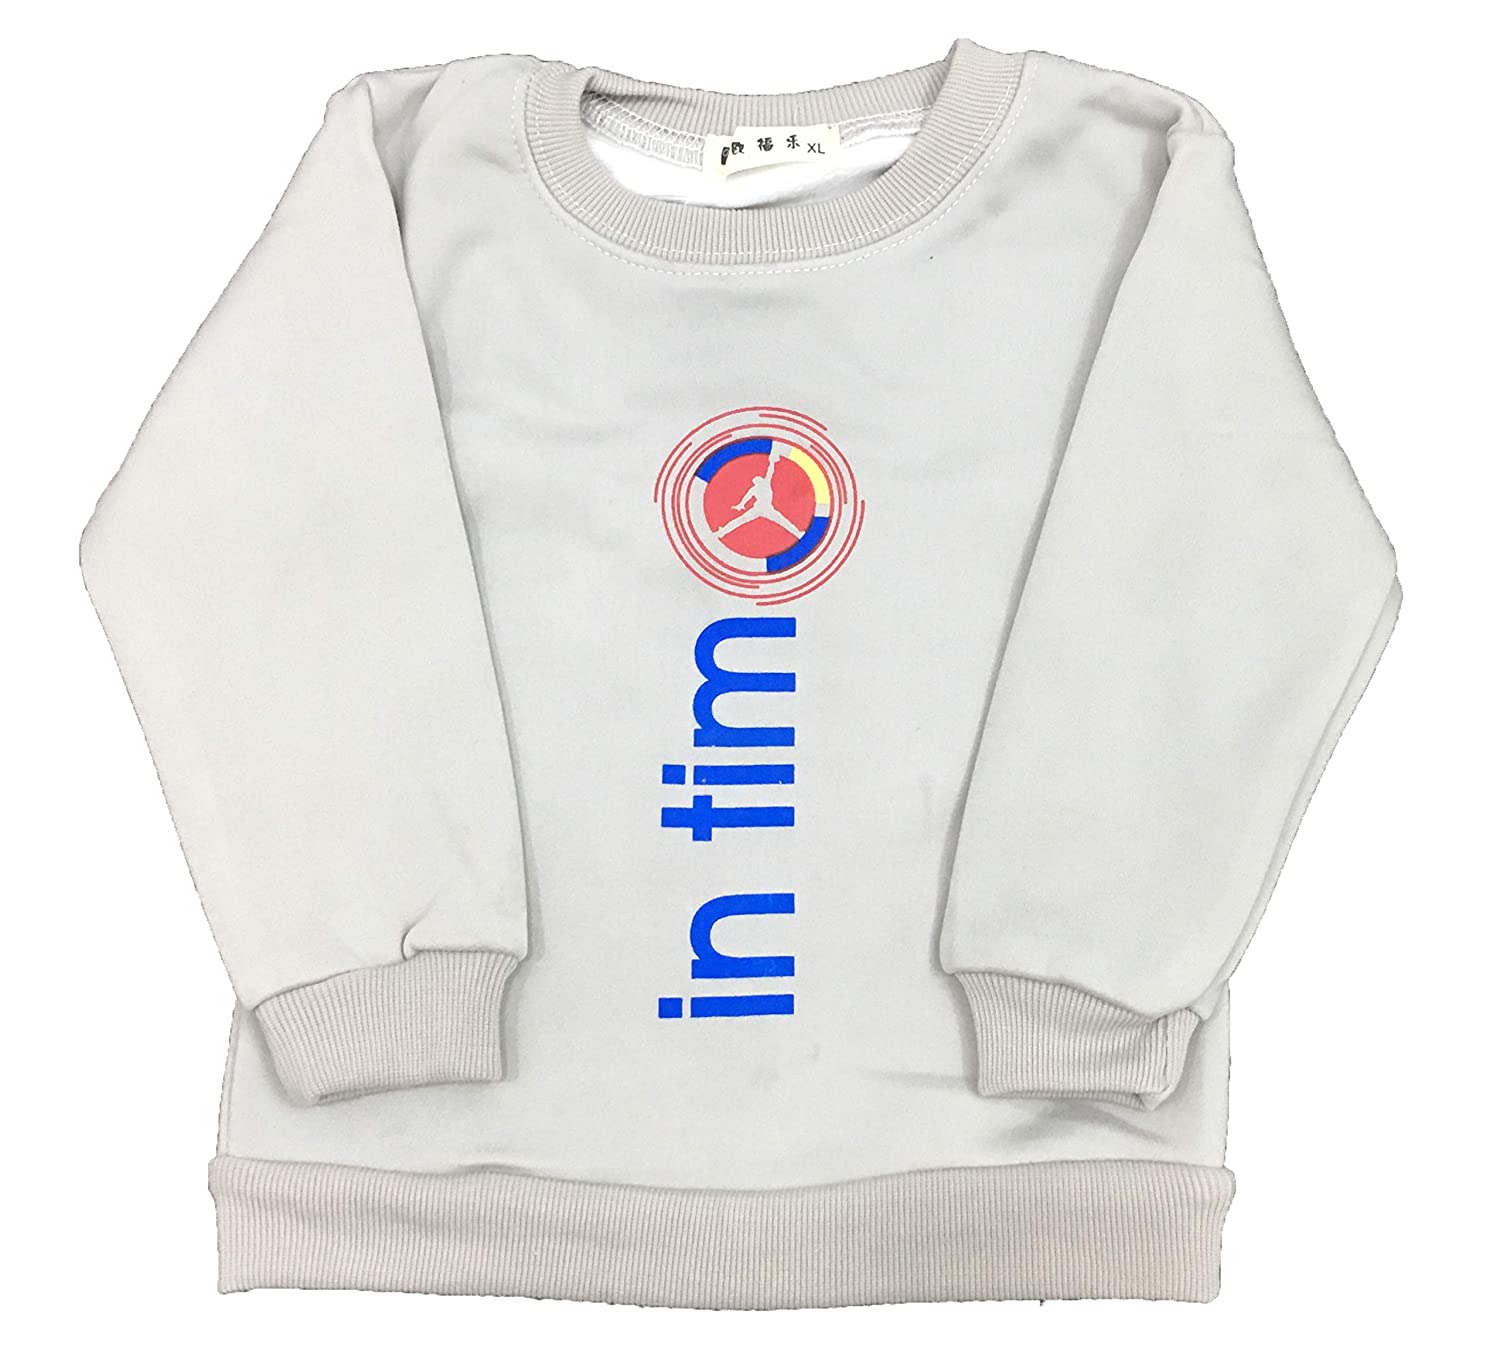 fde4d89b695a ICABLE Baby Boys Baby Girls Kids Full Sleeves Cotton Blend Winter Wear Sweatshirts  Cute Graphic Print Top with Inner Fur  Amazon.in  Clothing   Accessories